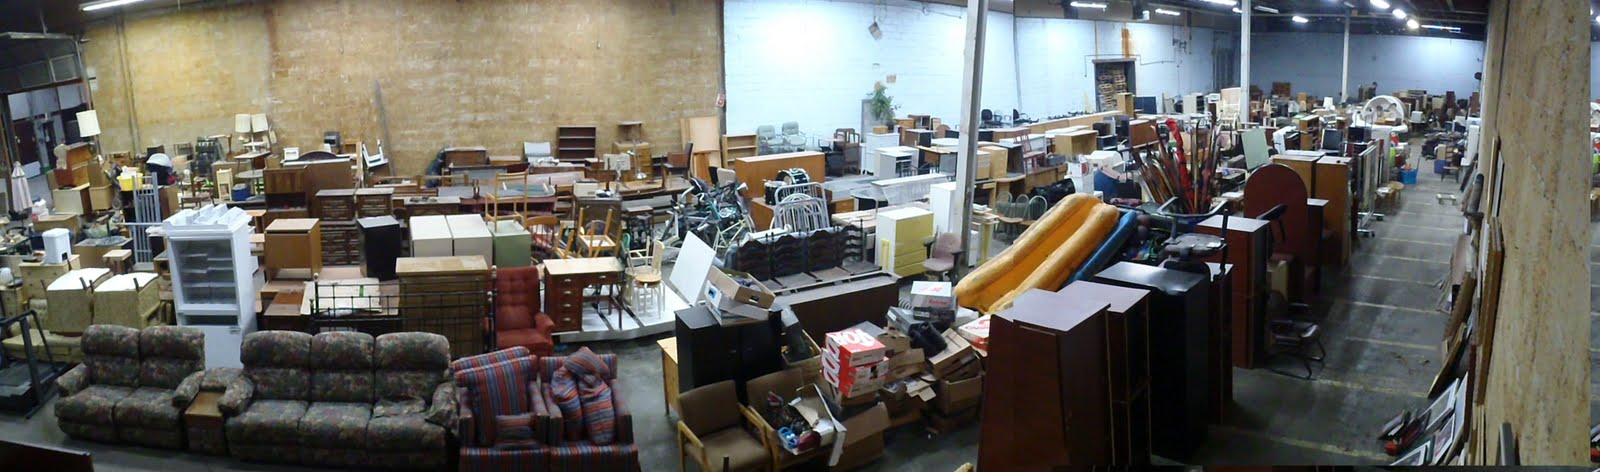 ... (if it's still good!) as well as a place that takes furniture donations  of all kinds, including from hotels. Lots of treasures to be found. Expect  dust!